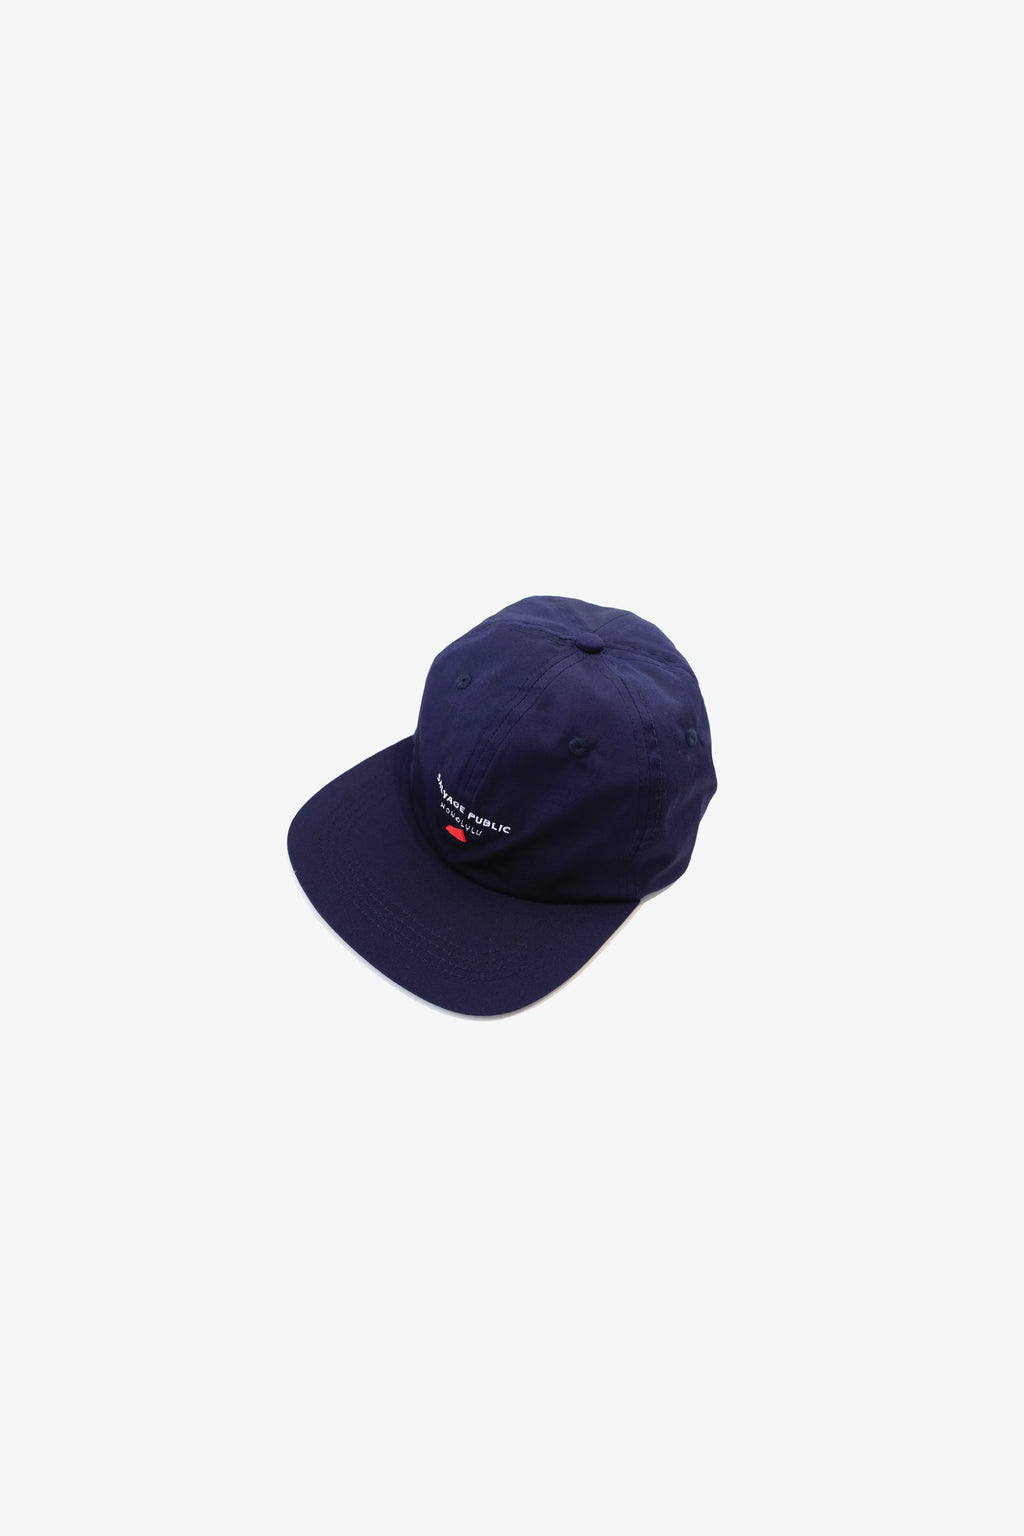 Hat - Pops, Unstructured 6-Panel - Navy